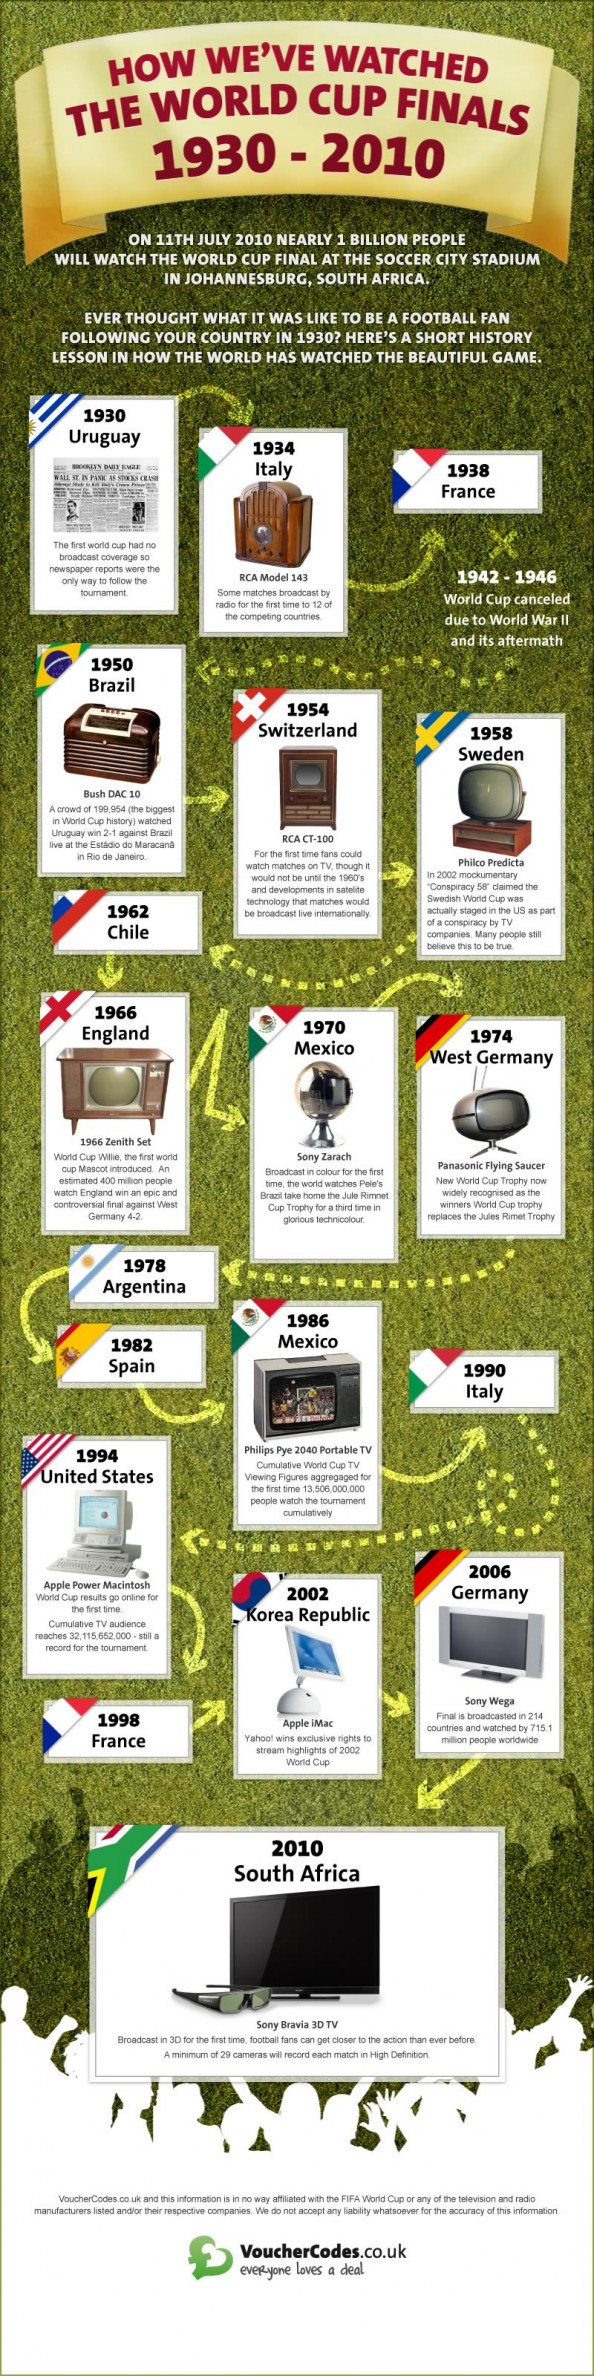 How We&#039;ve Watched the World Cup Finals 1930-2010 Infographic